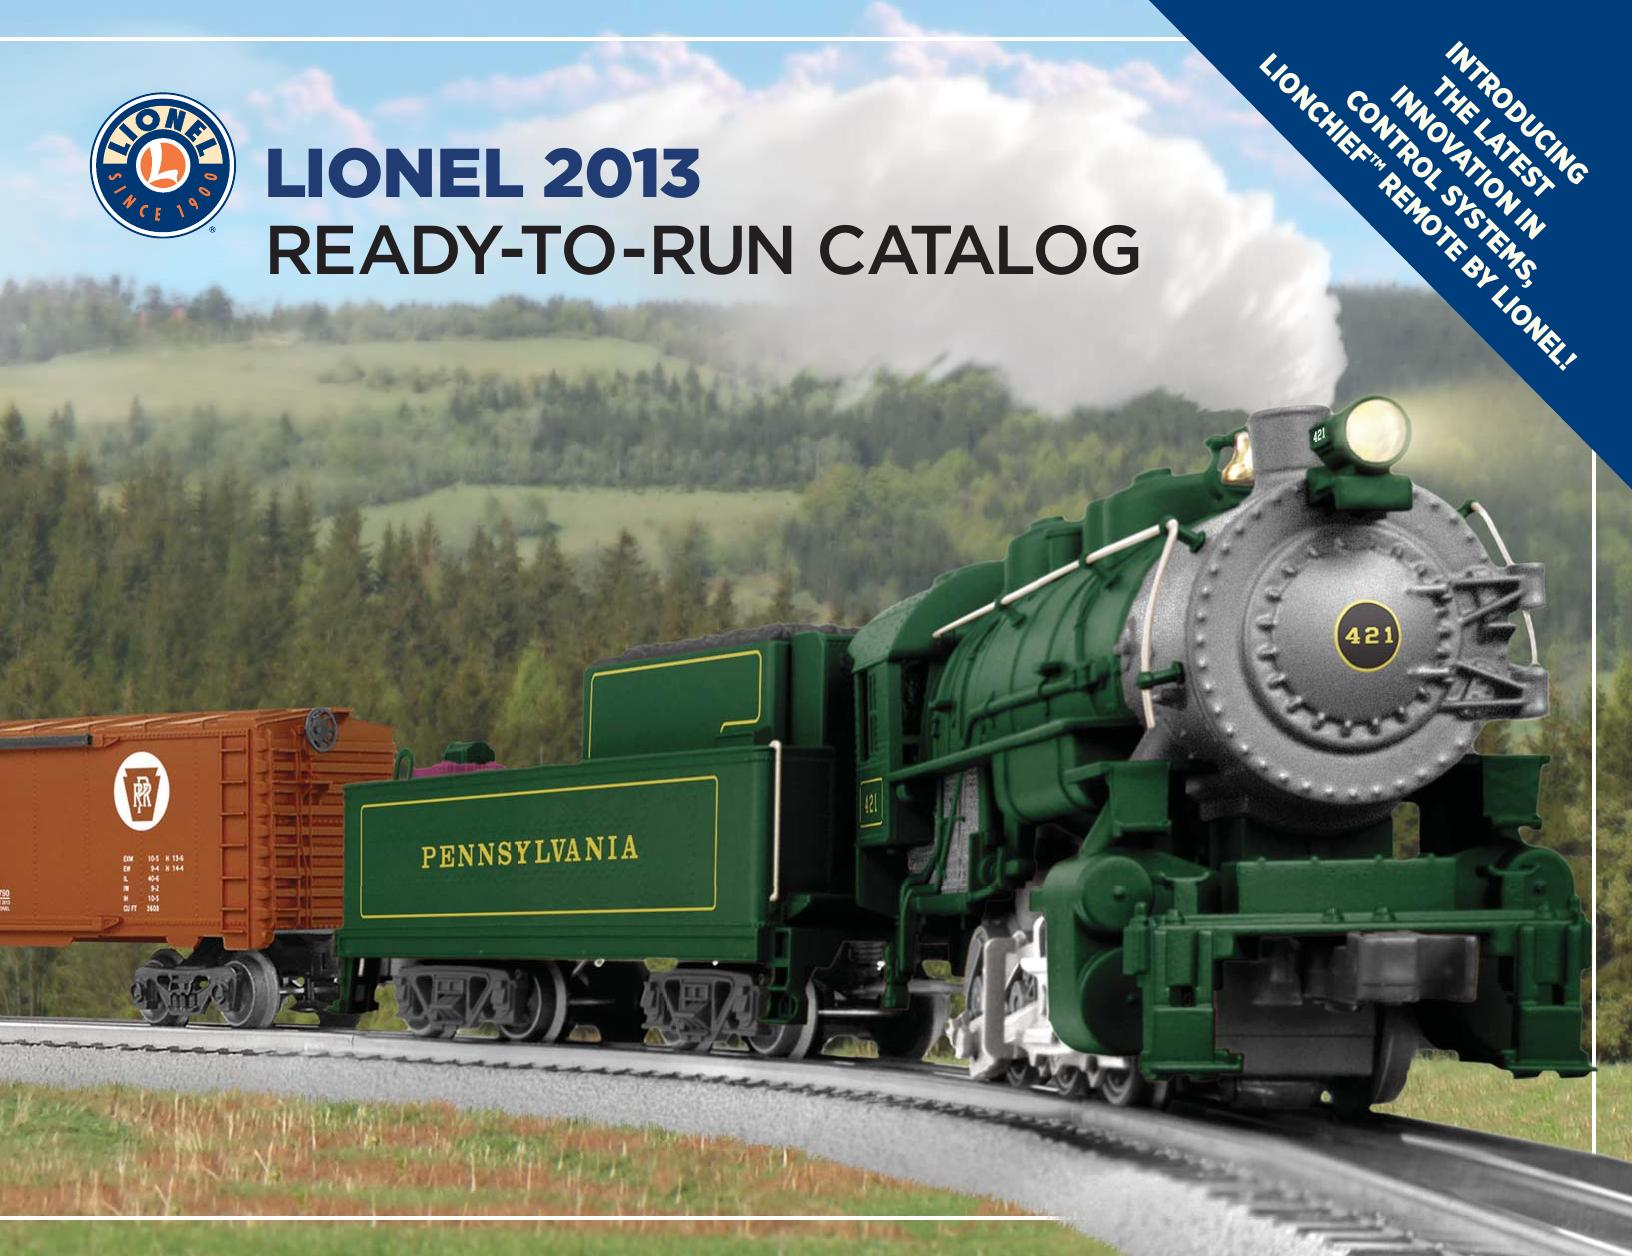 Lionel Catalogs - Ready To Run 2013